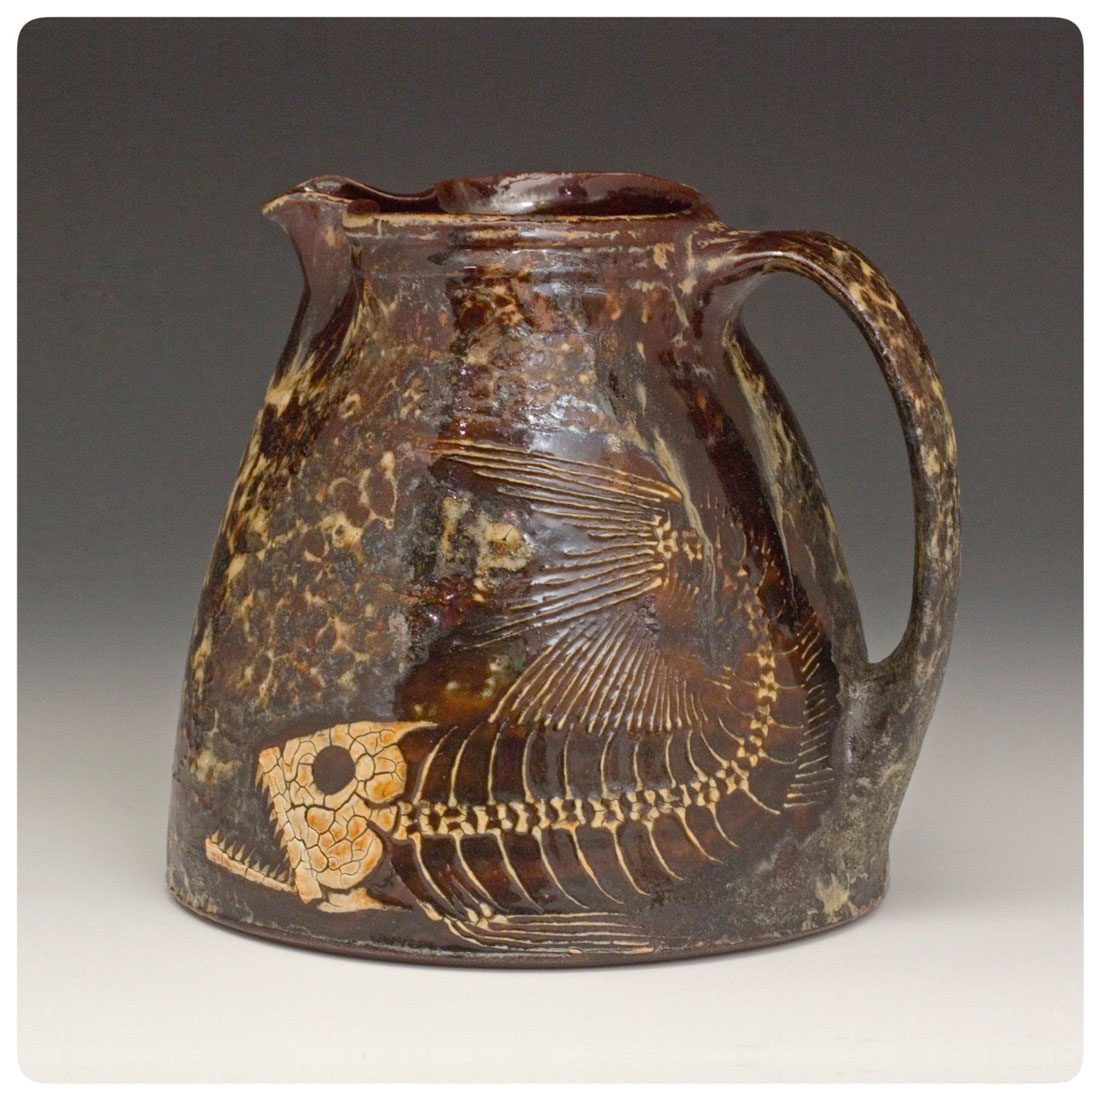 Pitcher-with-hand-drawn-fossil-fish-and-crystalline-glazes-made-by-Bruce-Gholson.jpg